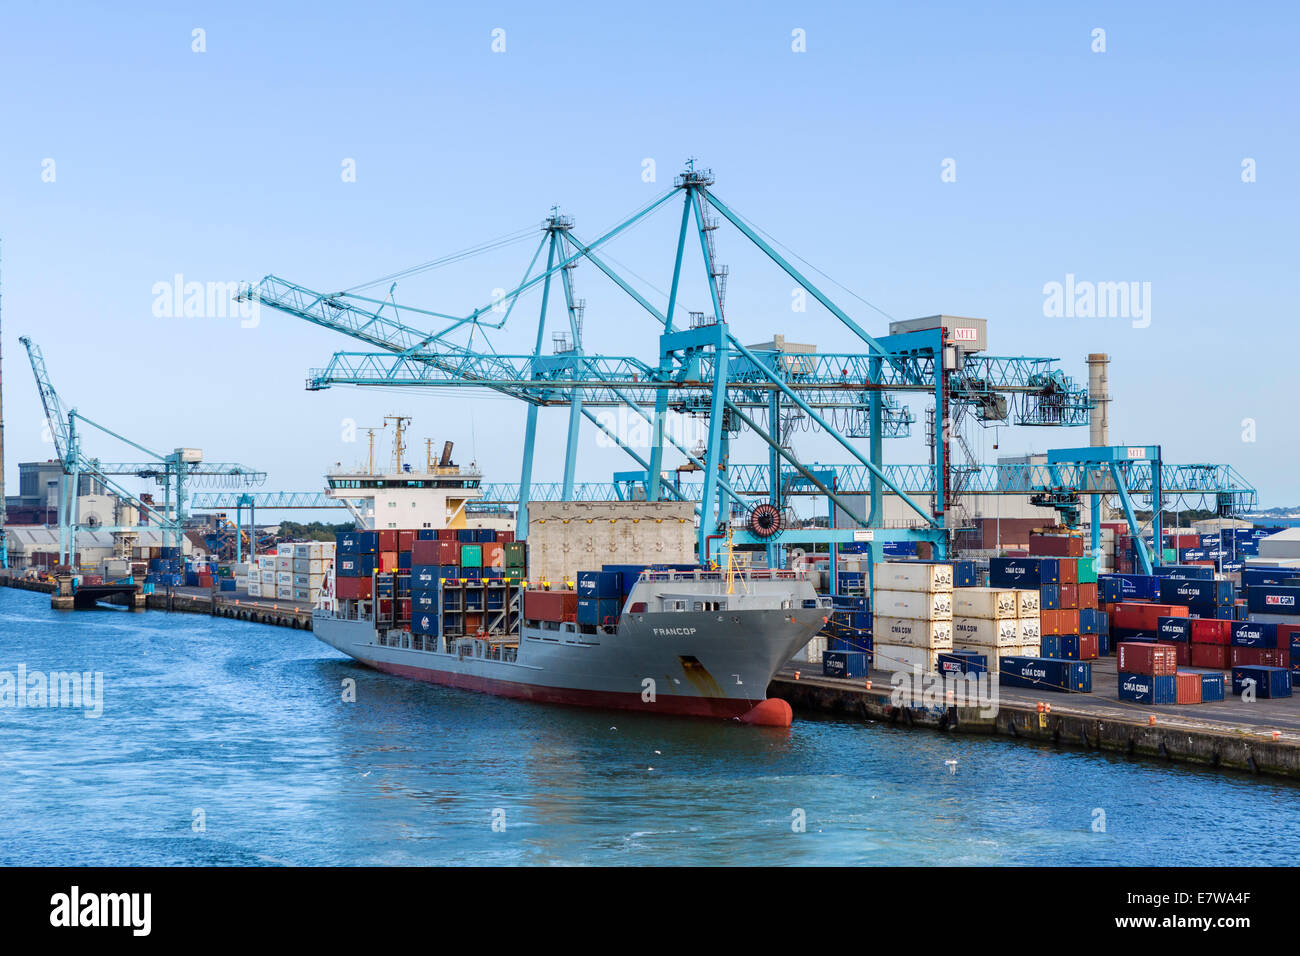 Container ship unloading at the Port of Dublin, Dublin City, Republic of Ireland - Stock Image